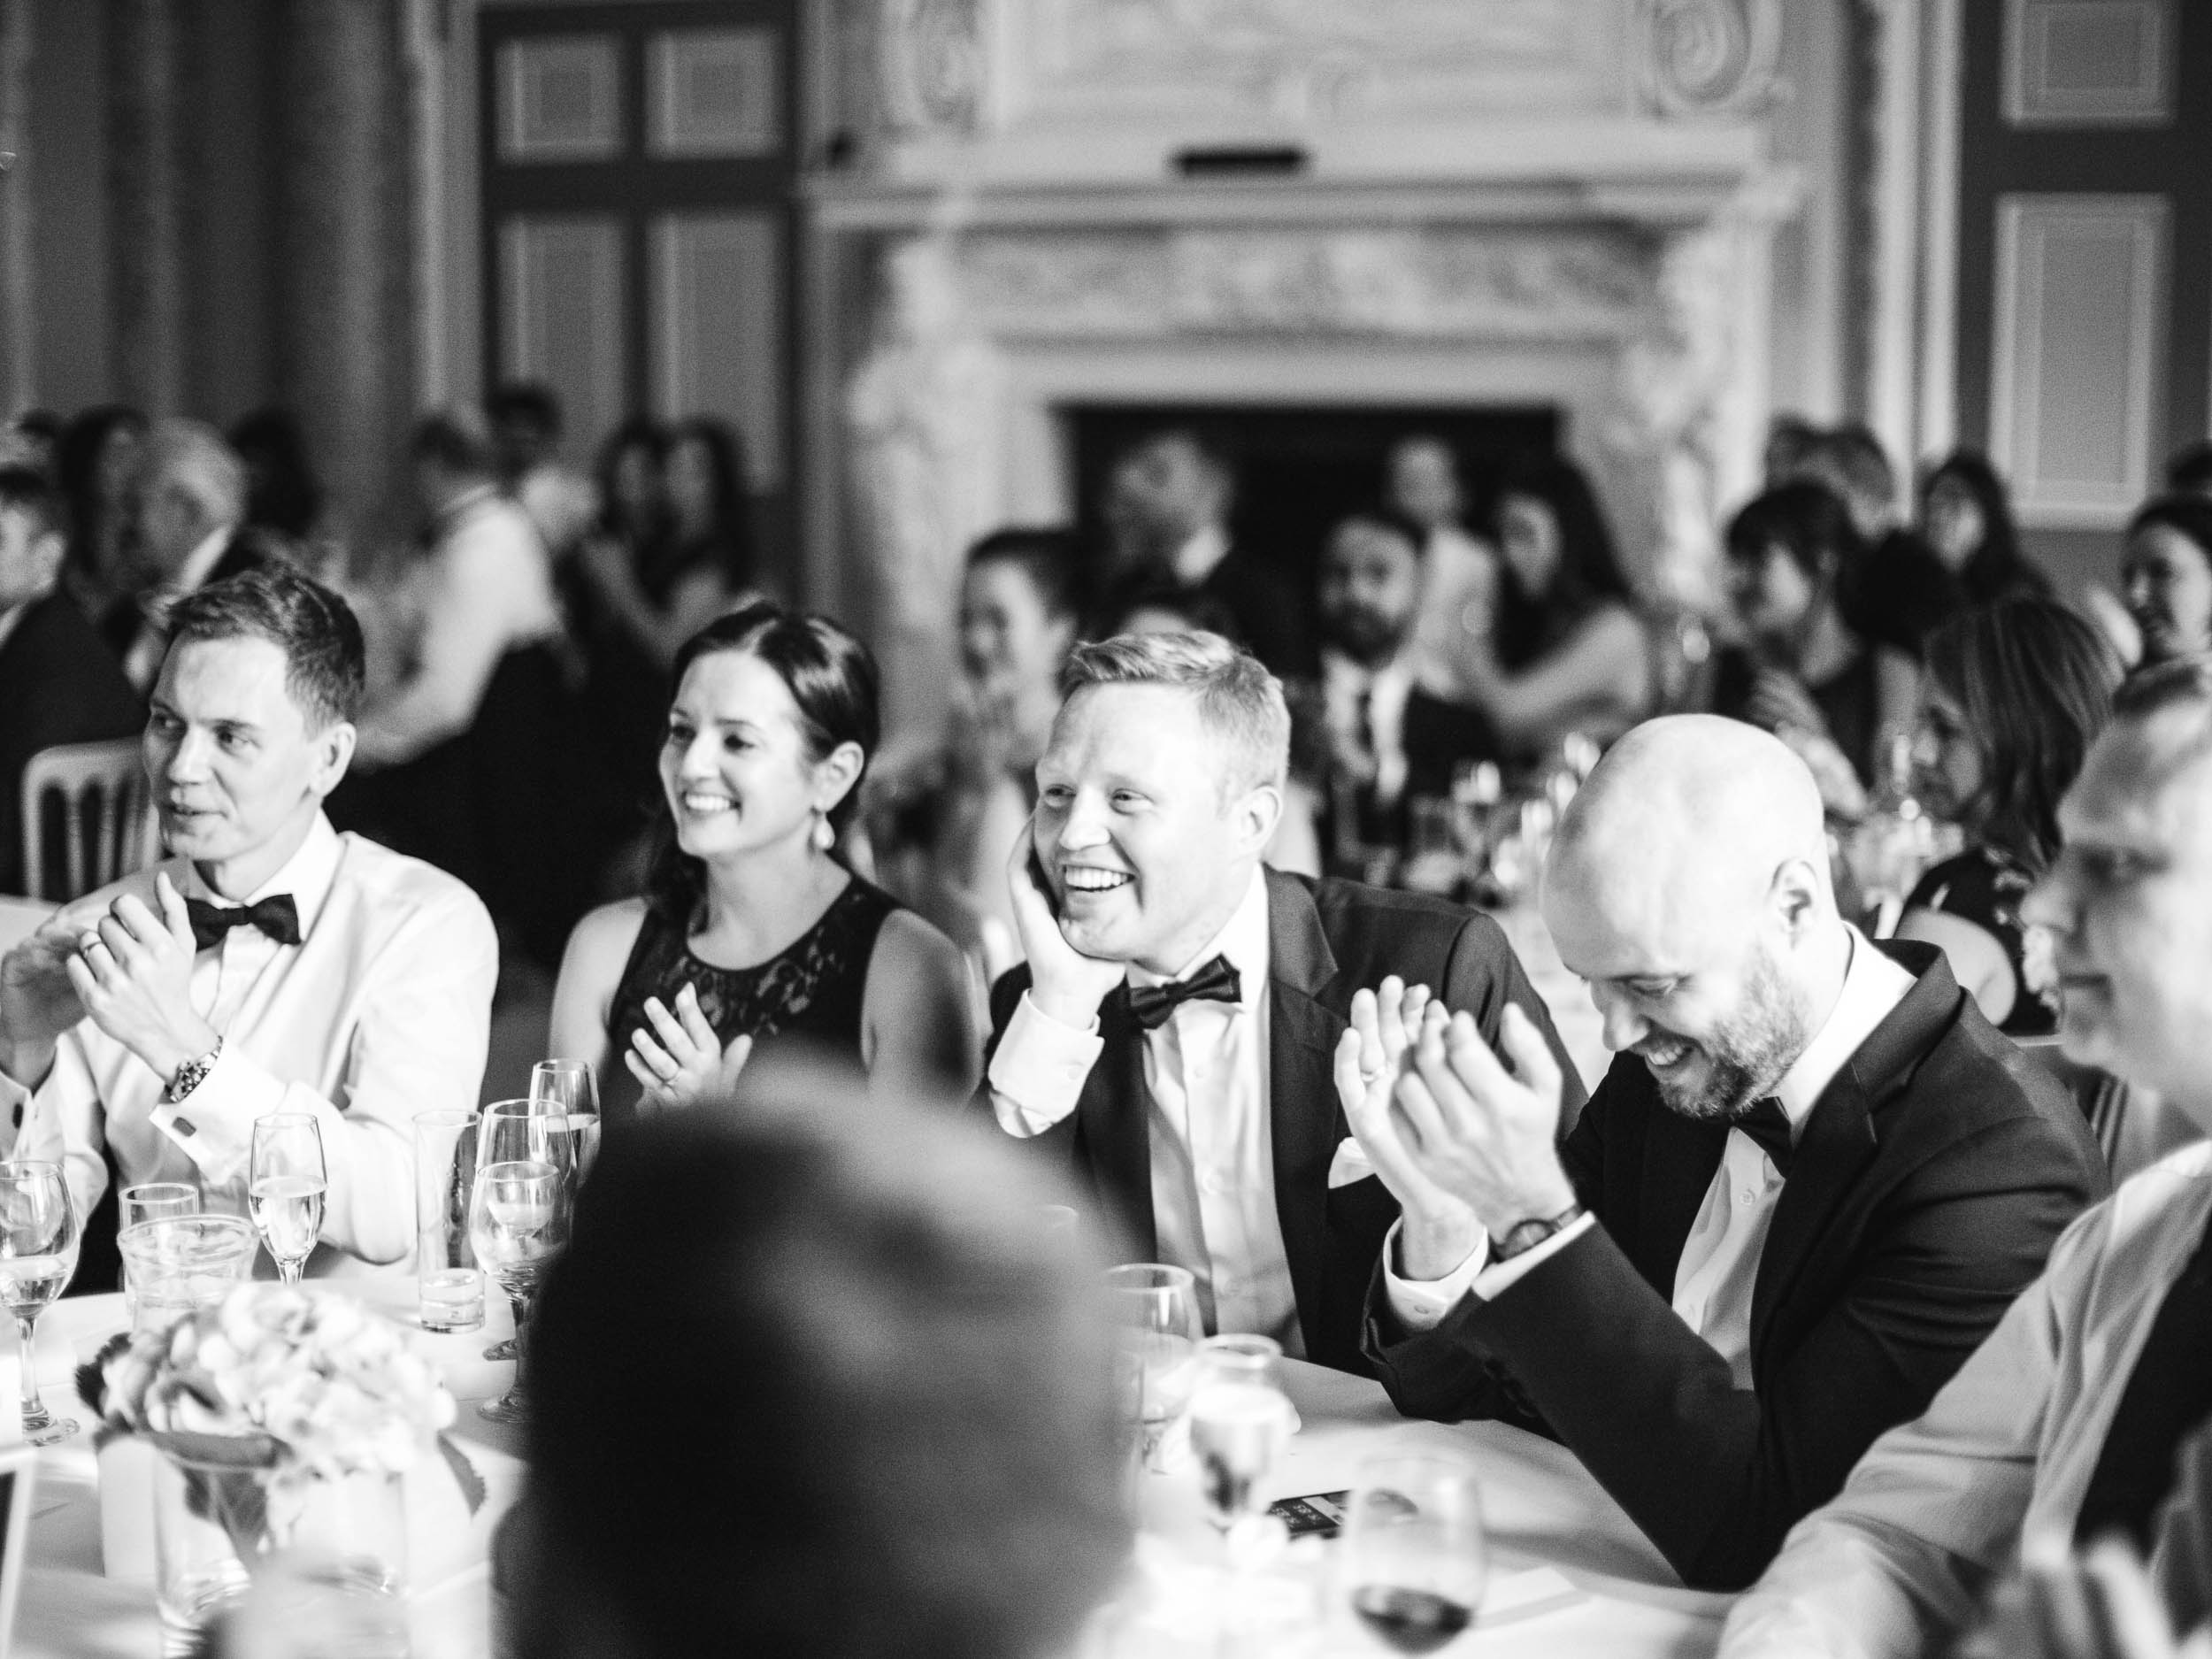 Amy O'Boyle Photography- Destination & UK Fine Art Film Wedding Photographer- Stoneleigh Abbey Wedding-63.jpg